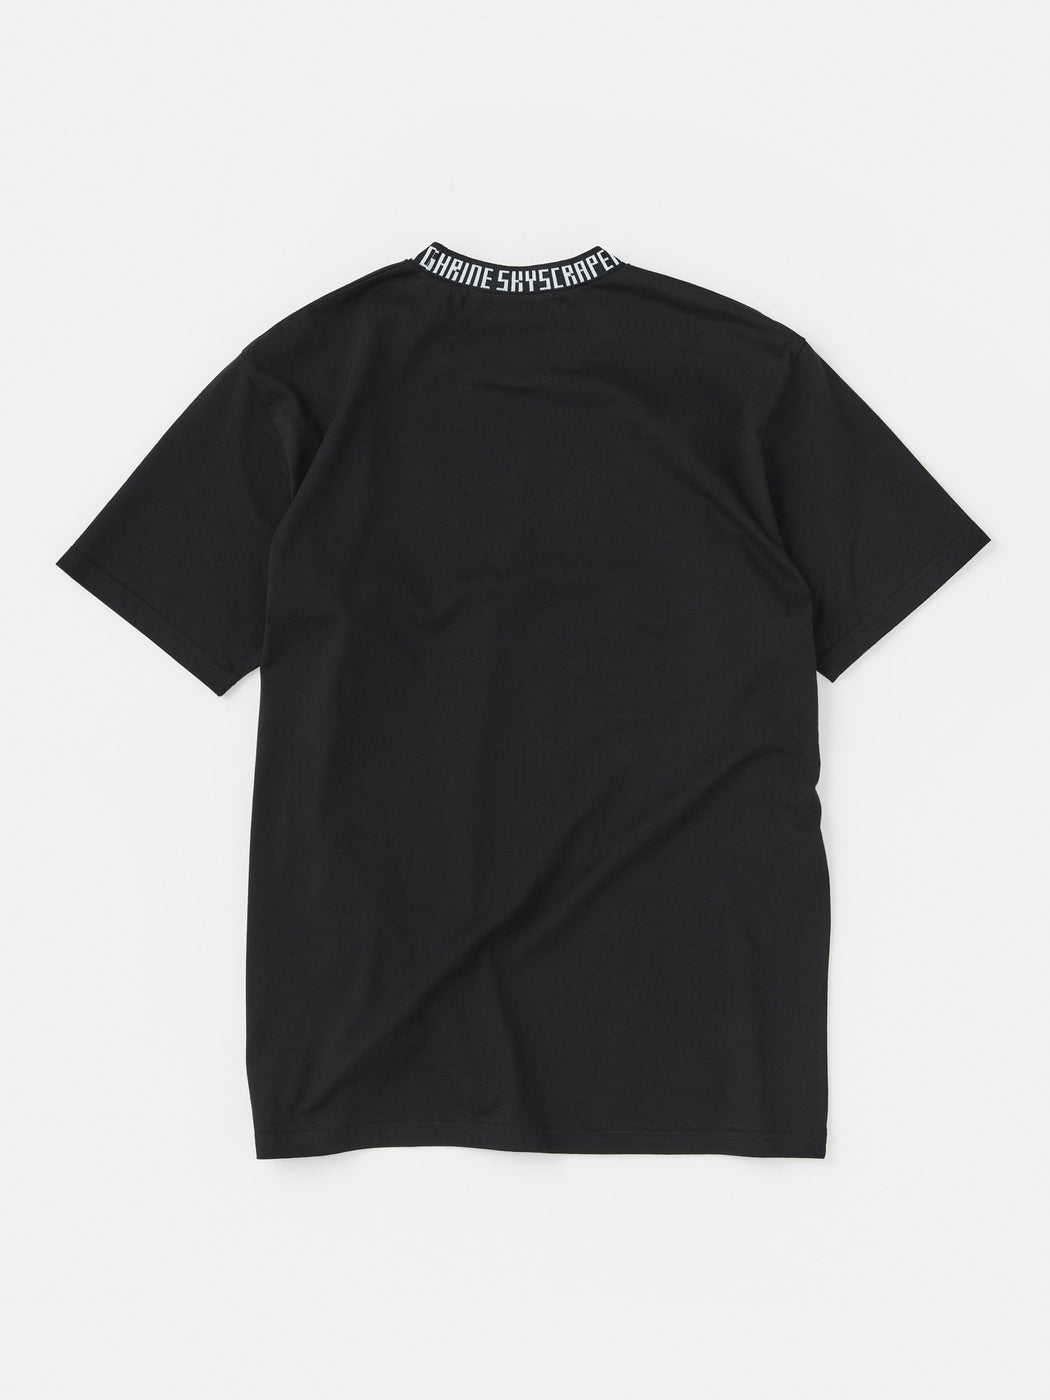 ALOYE Takahashi Knit Short Sleeve T-shirt Black-Typo